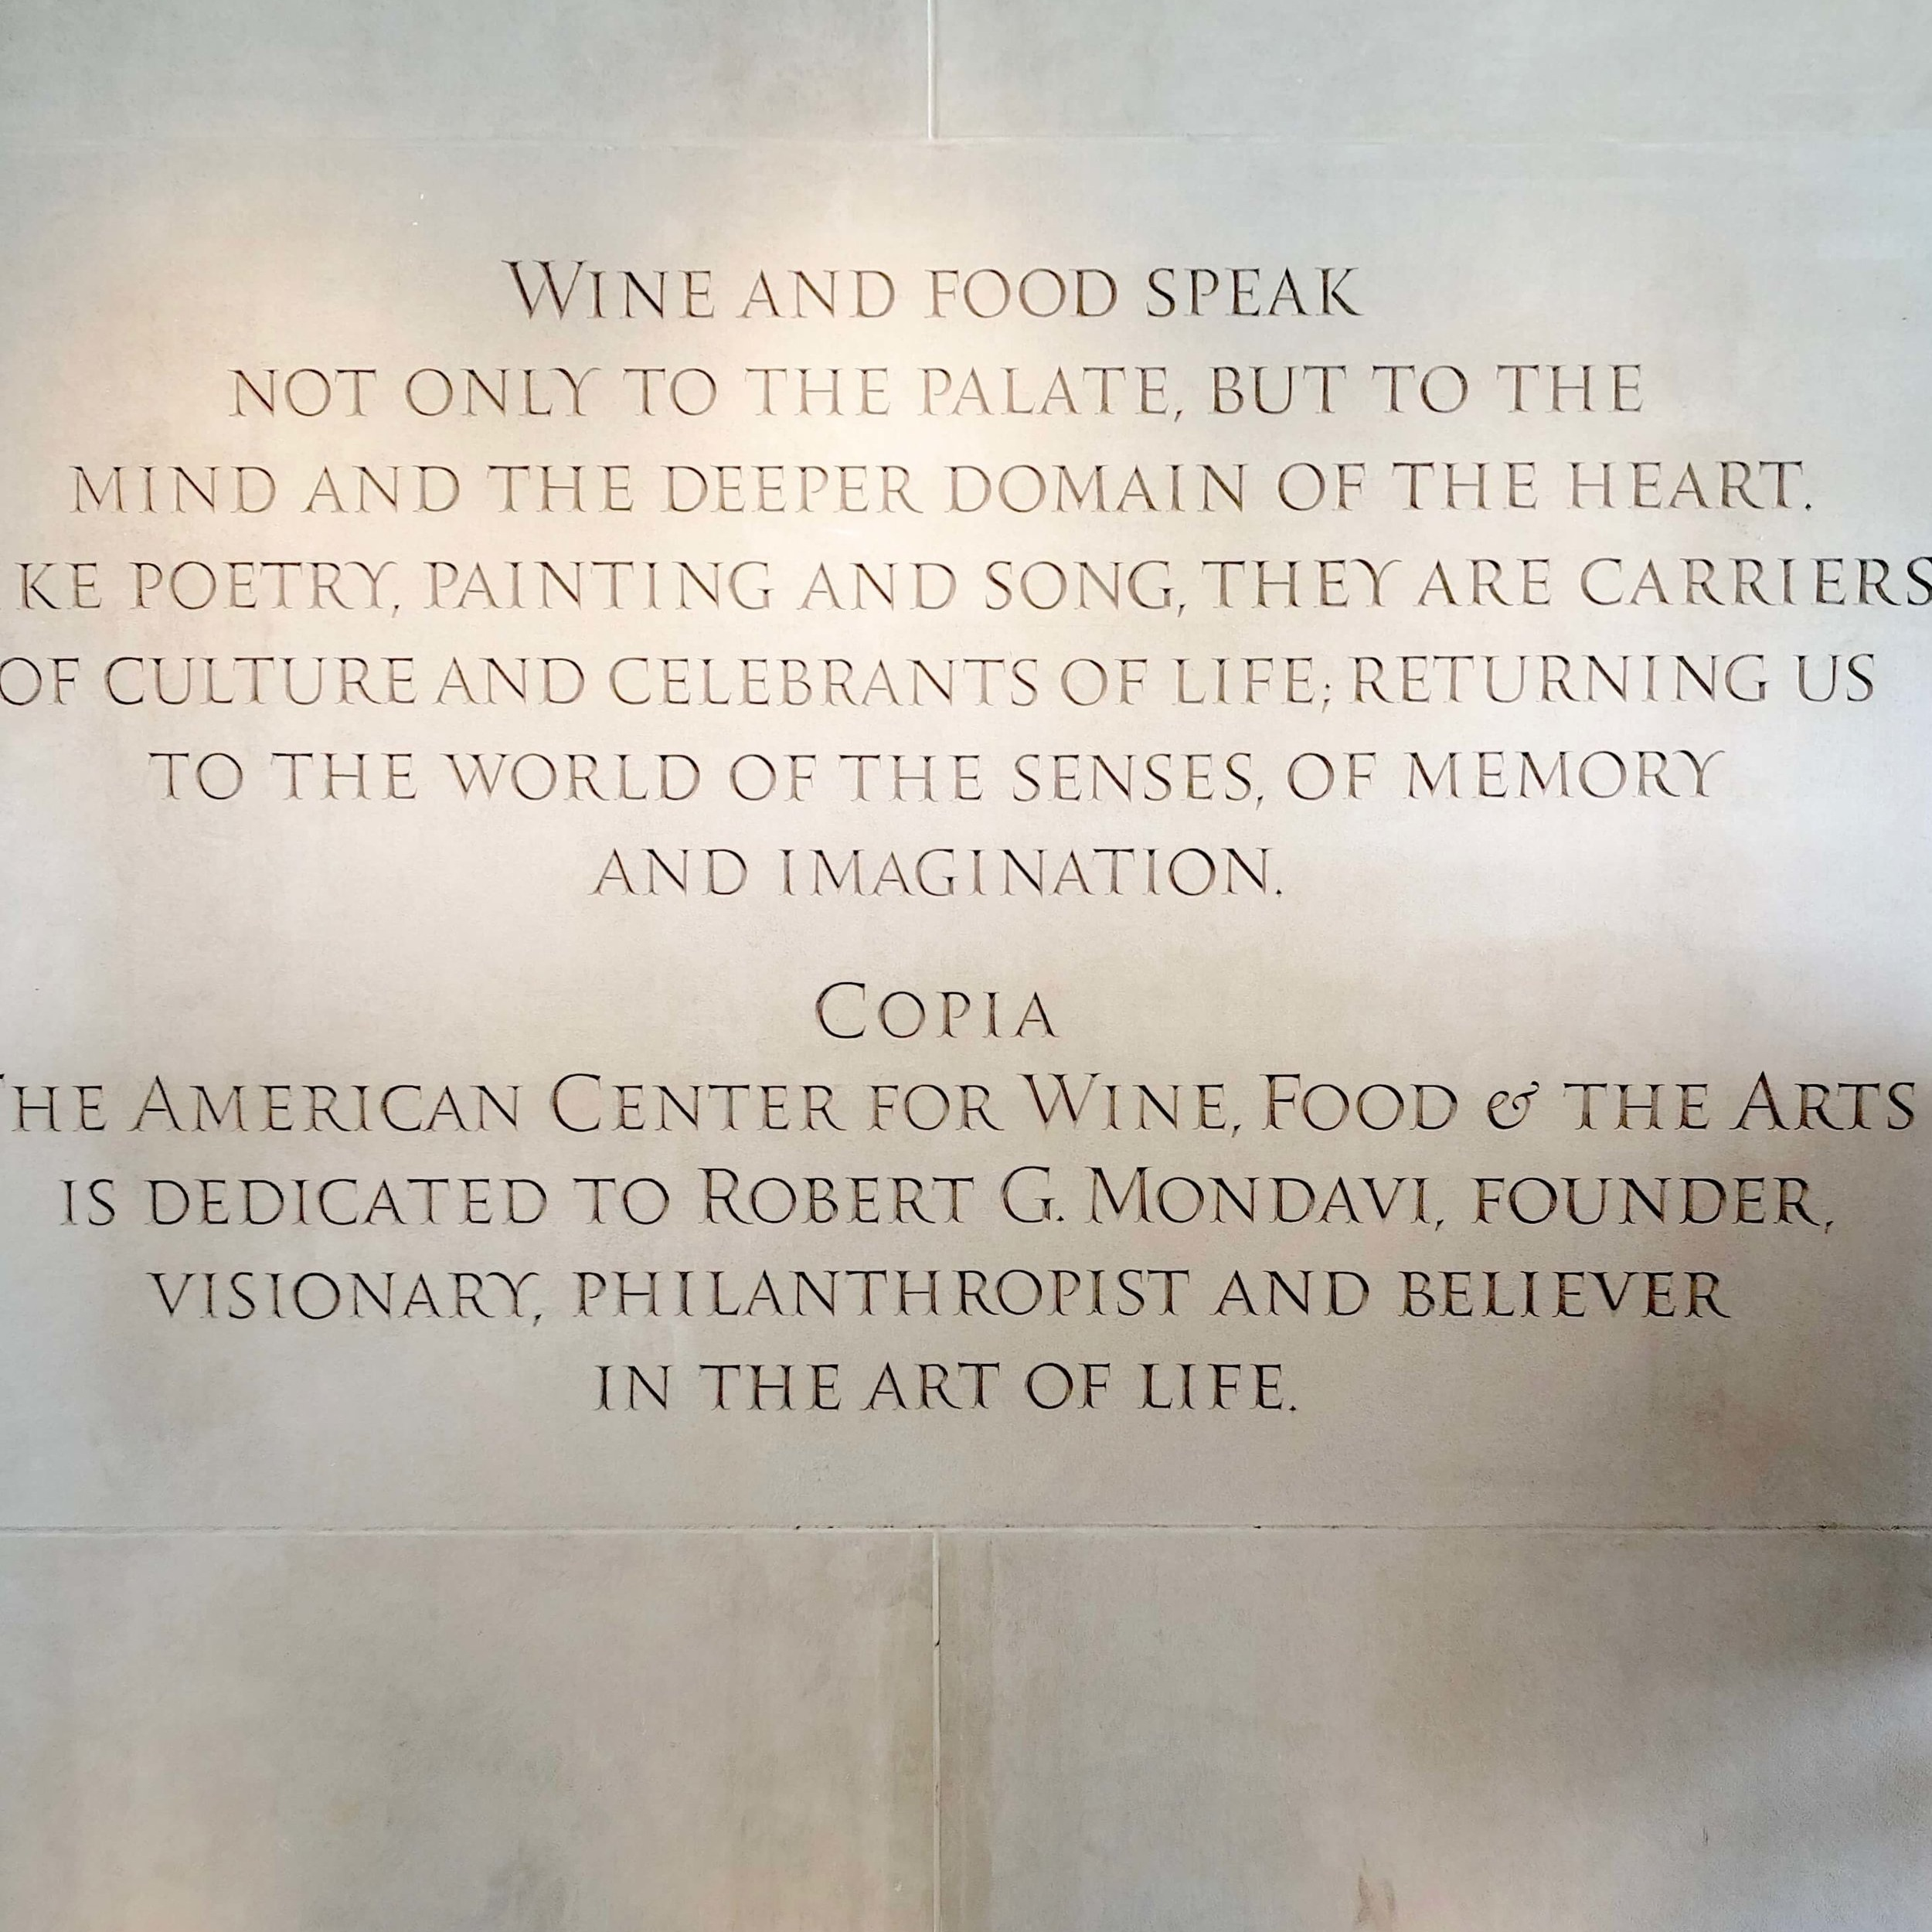 Mission statement and dedication of the Culinary Institute of America, Copia in Napa Valley, California.